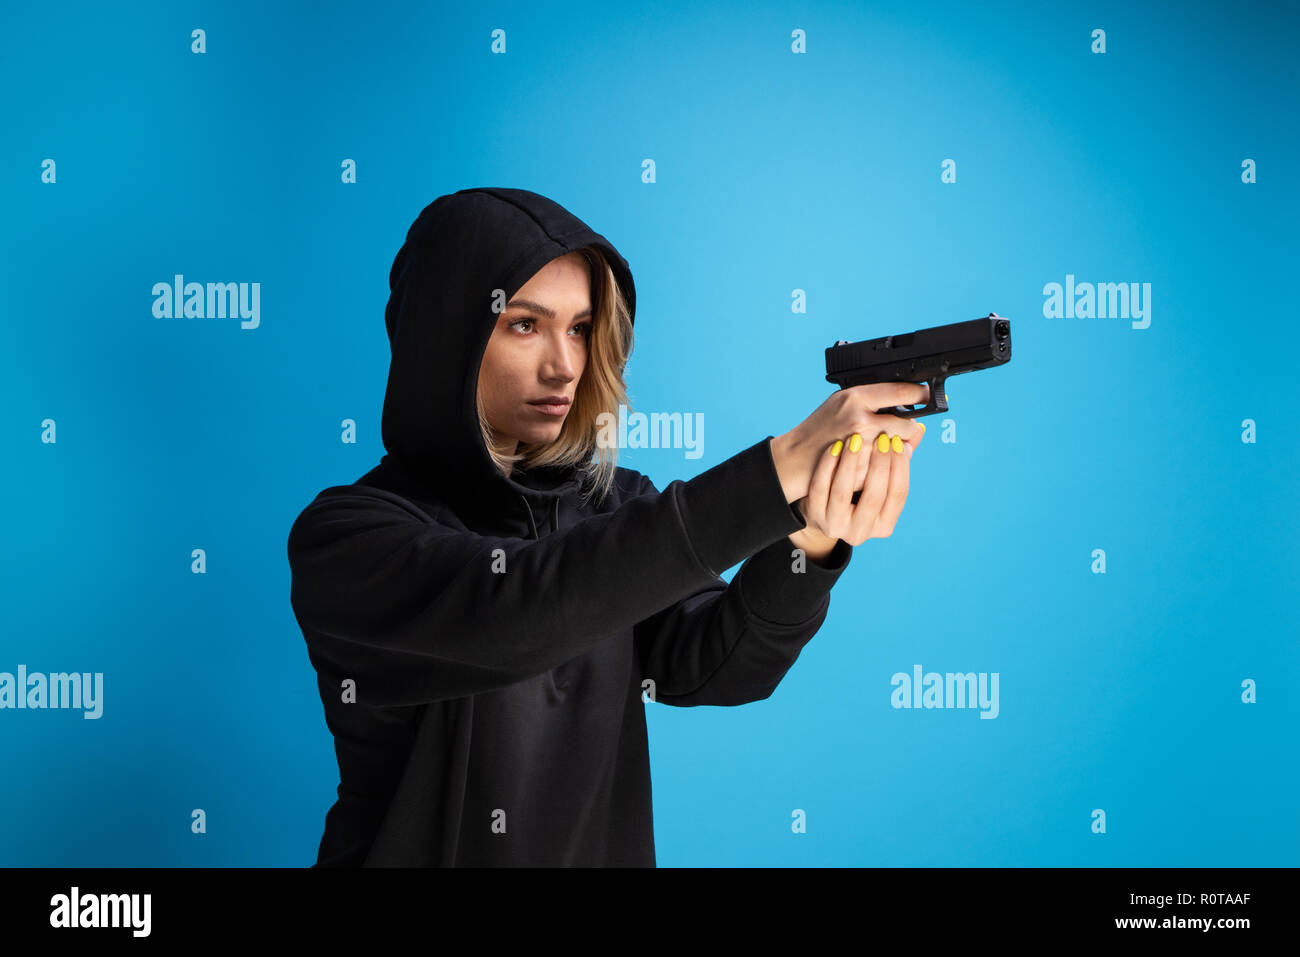 Hooded girl holding a gun pointed to the right side. Criminal face adult gangster Stock Photo